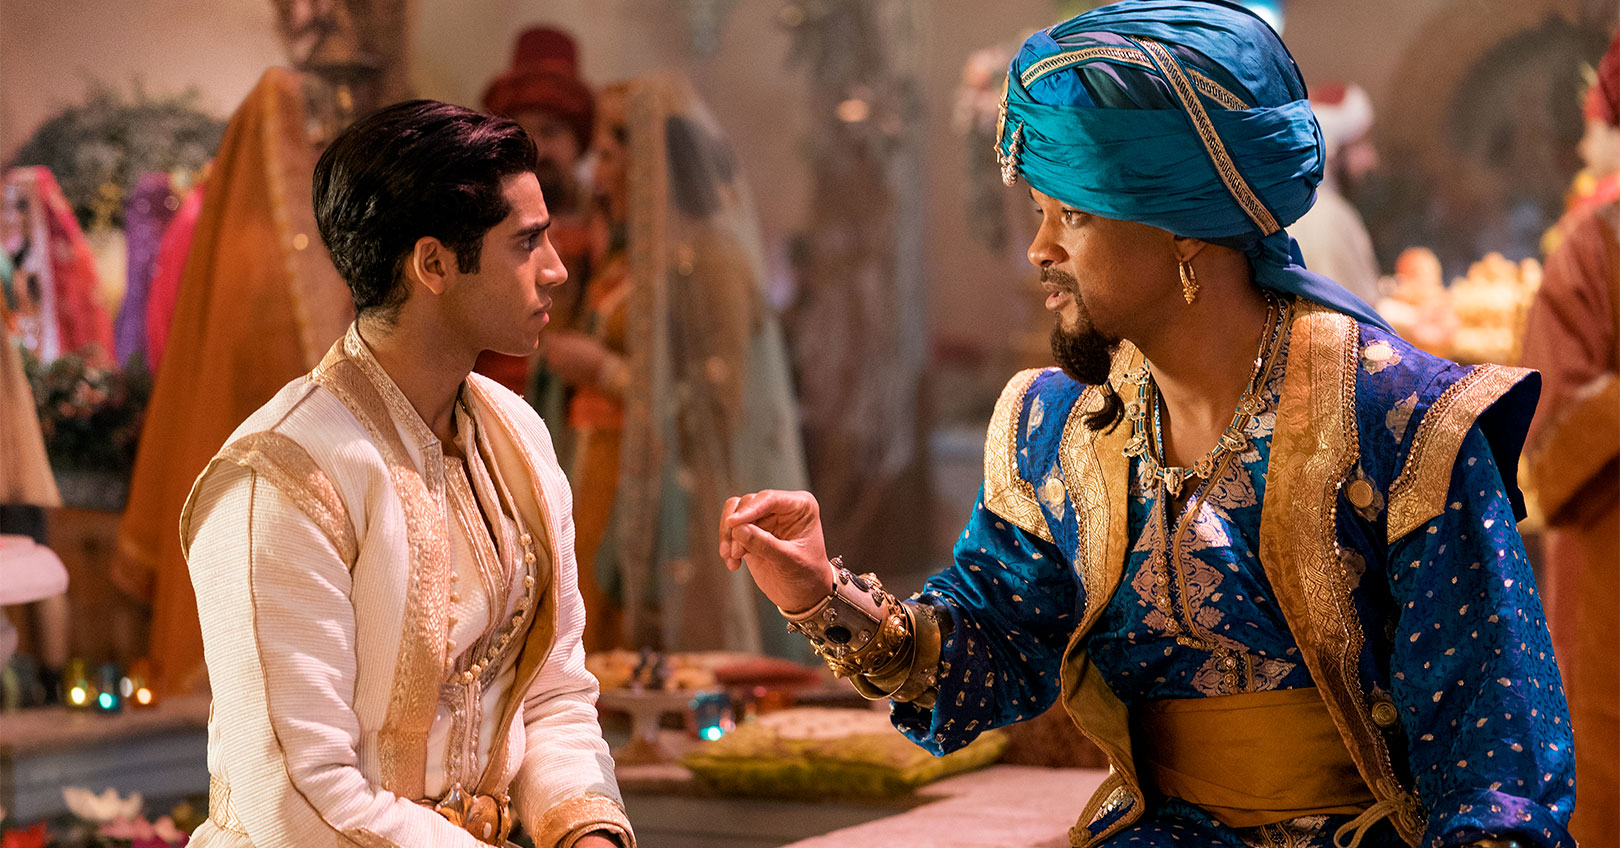 Aladdin (2019) - Mena Massoud and Will Smith